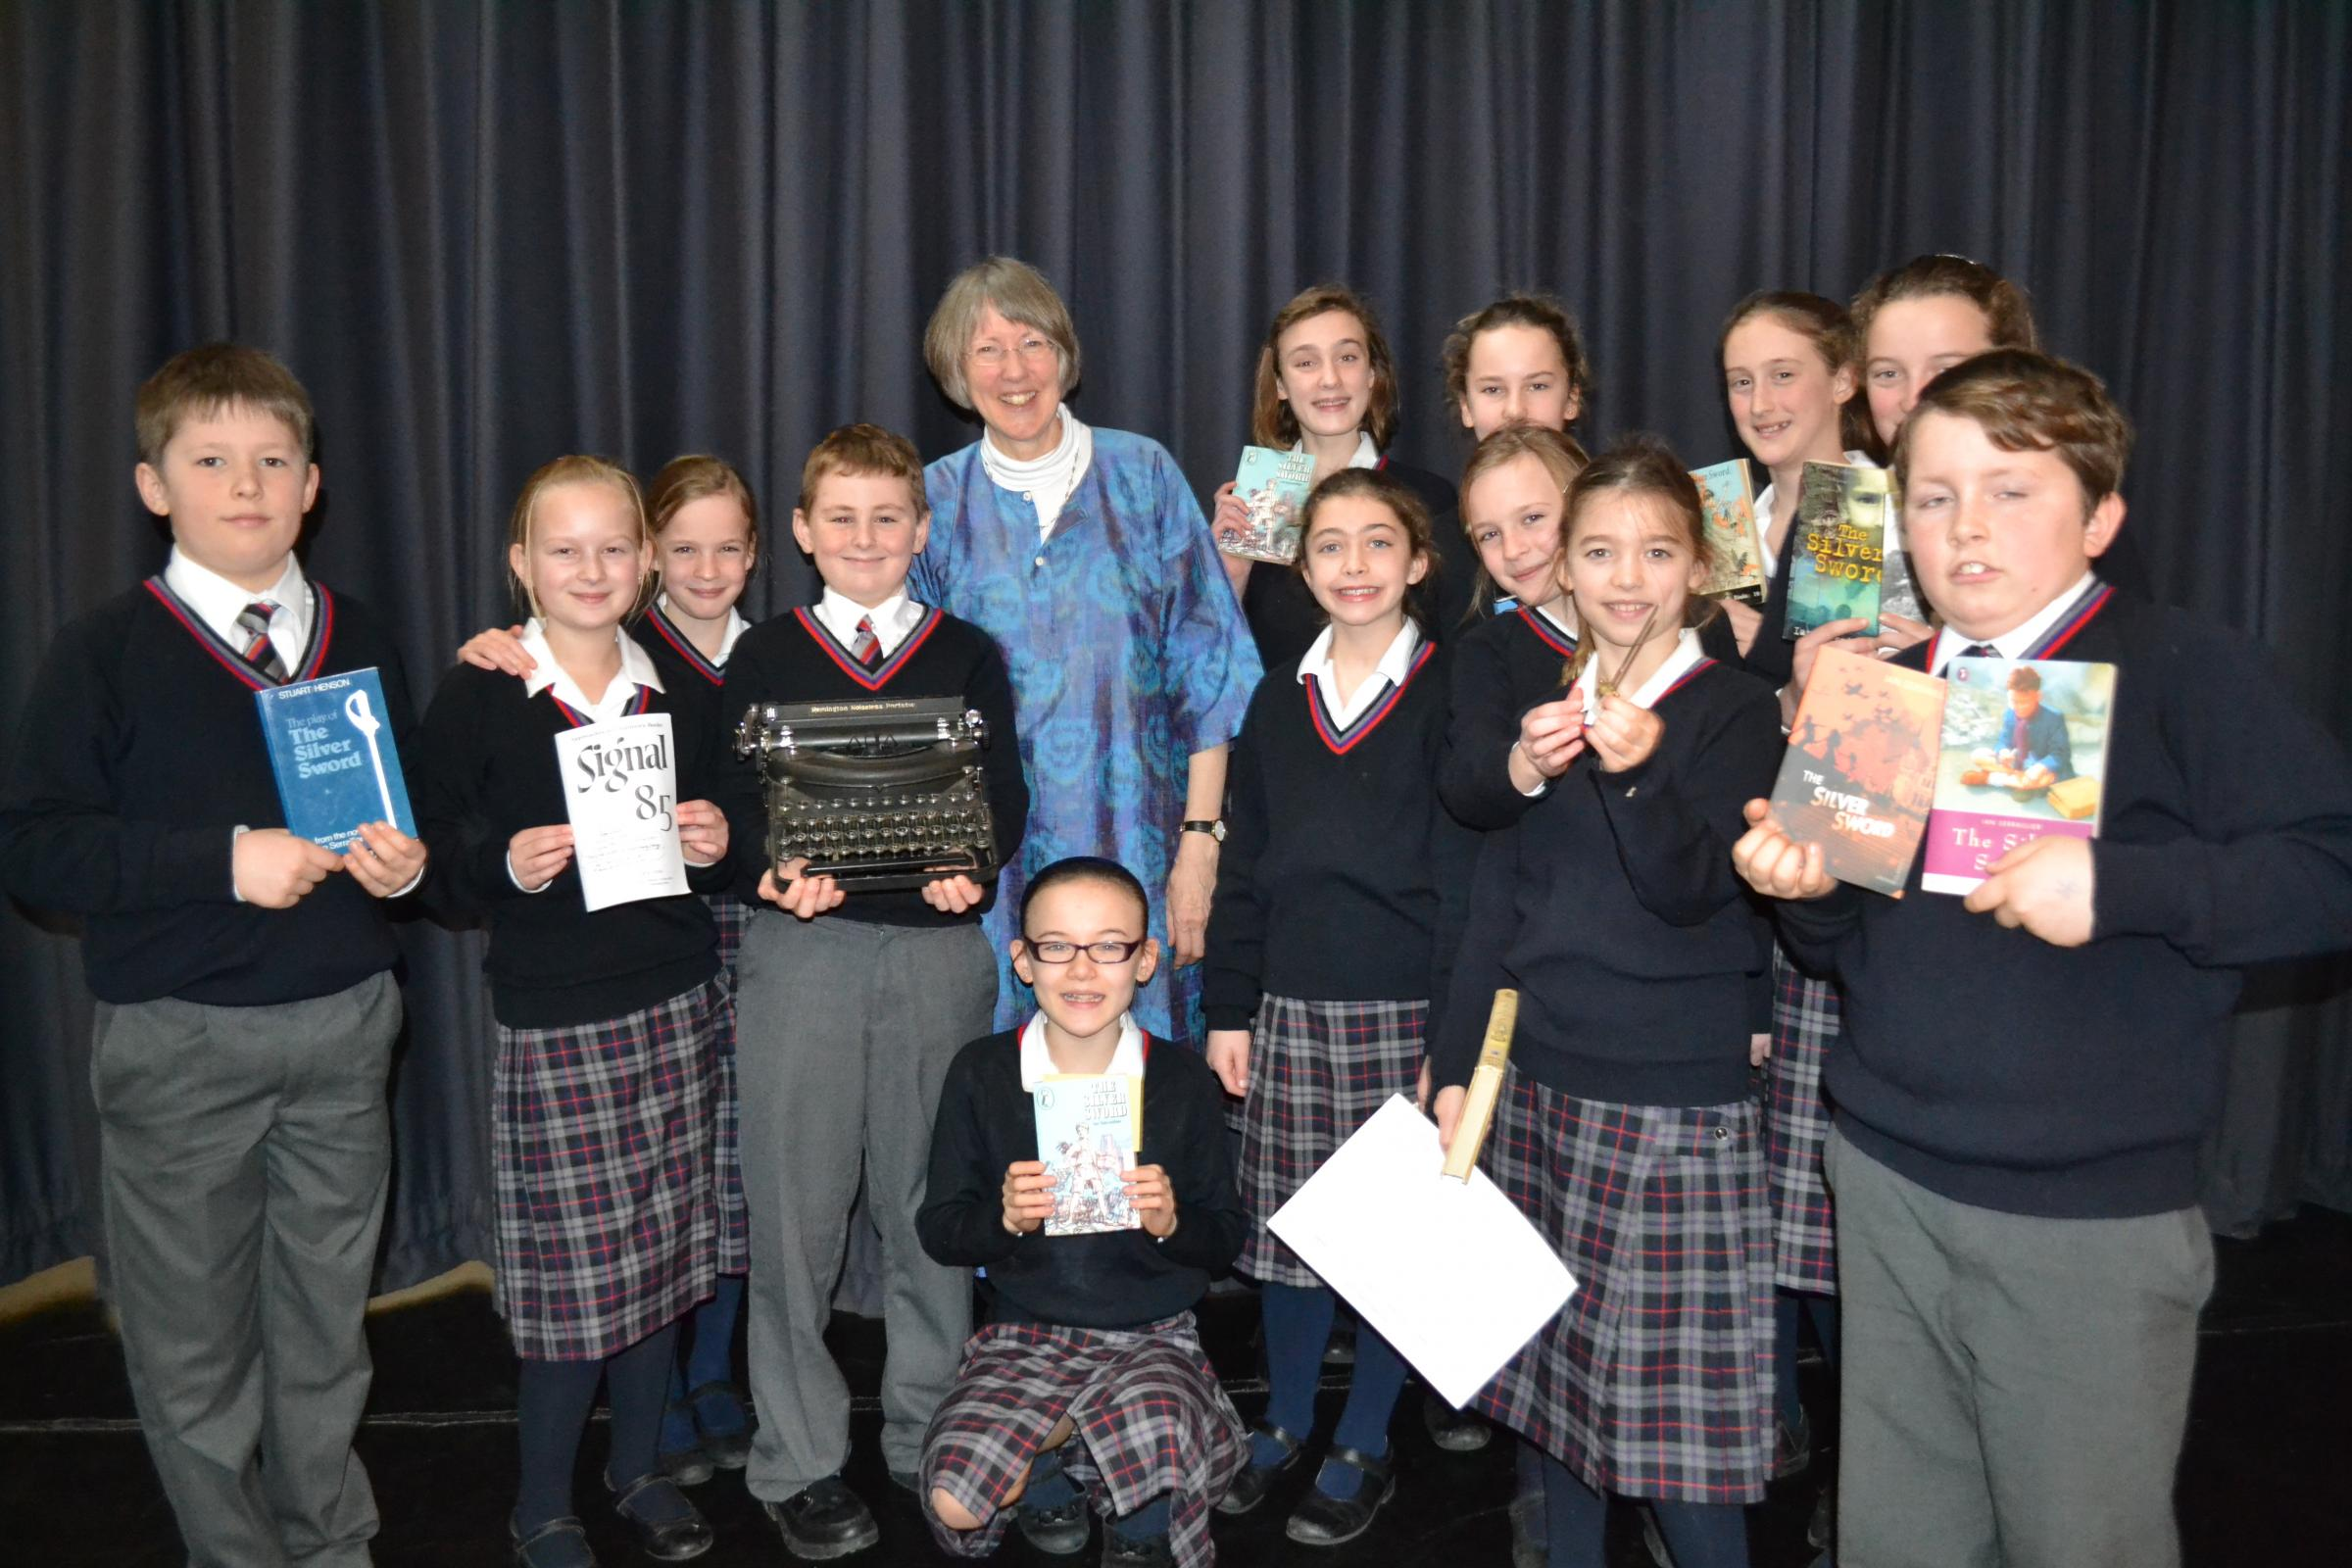 Jane Serraillier, daughter of novelist and former Wycliffe School teacher Ian Serraillier, visited pupils at her father's alma mater to share his